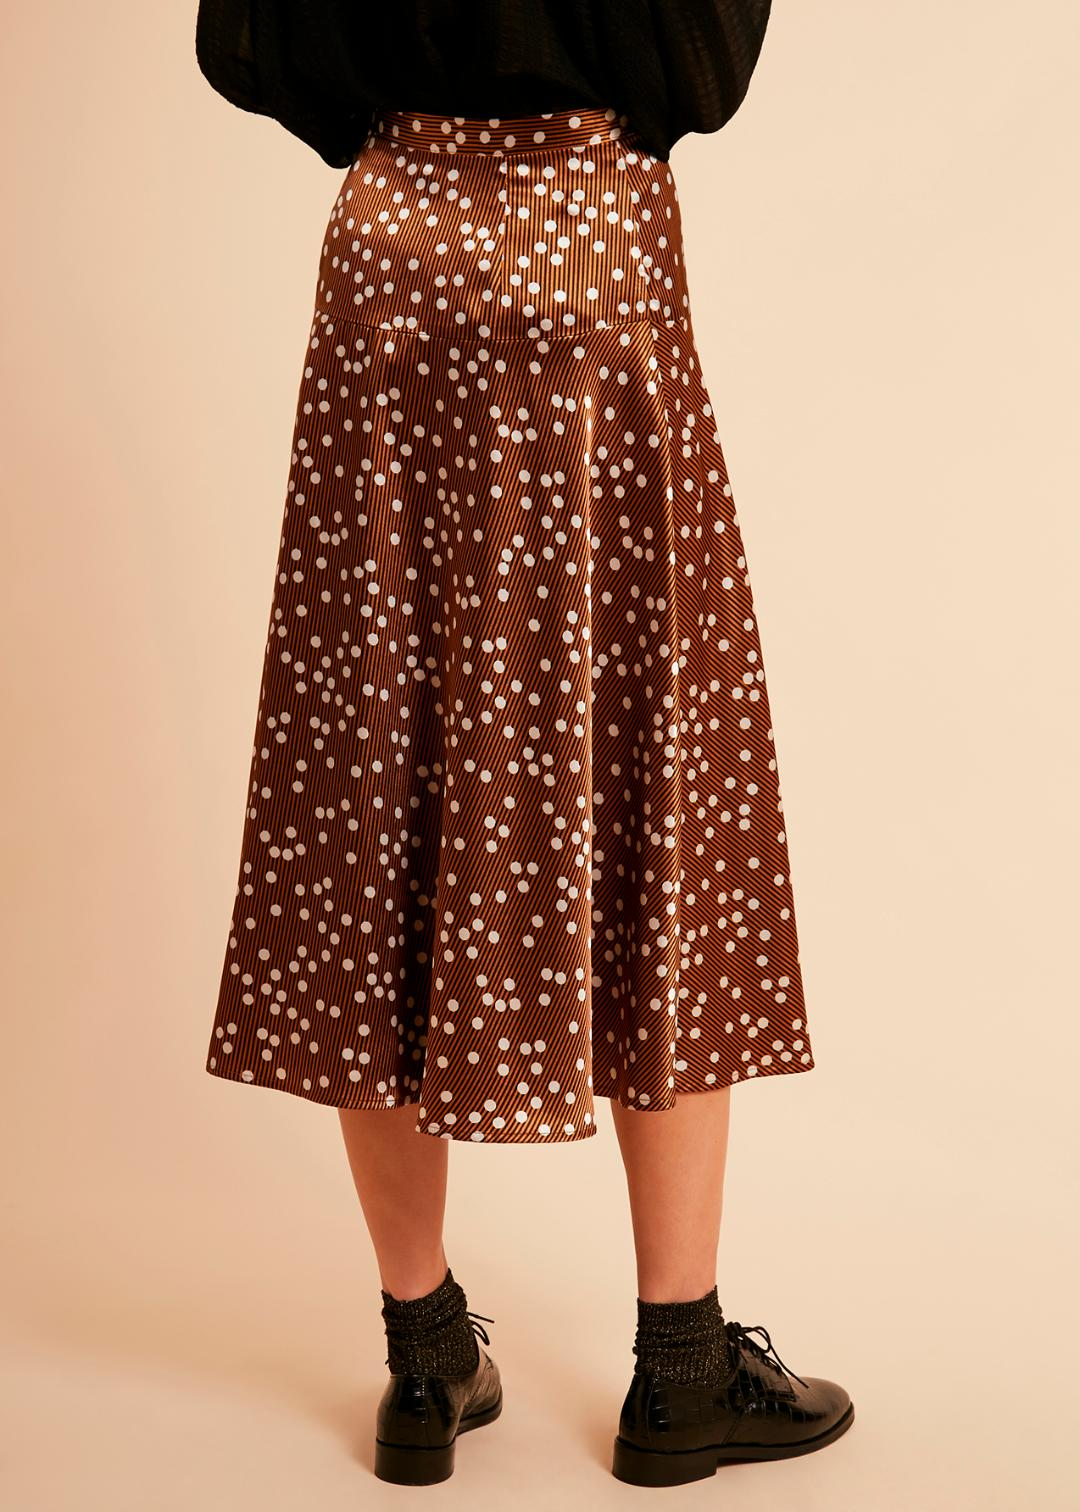 Edelweiss Skirt in Sugar Brown